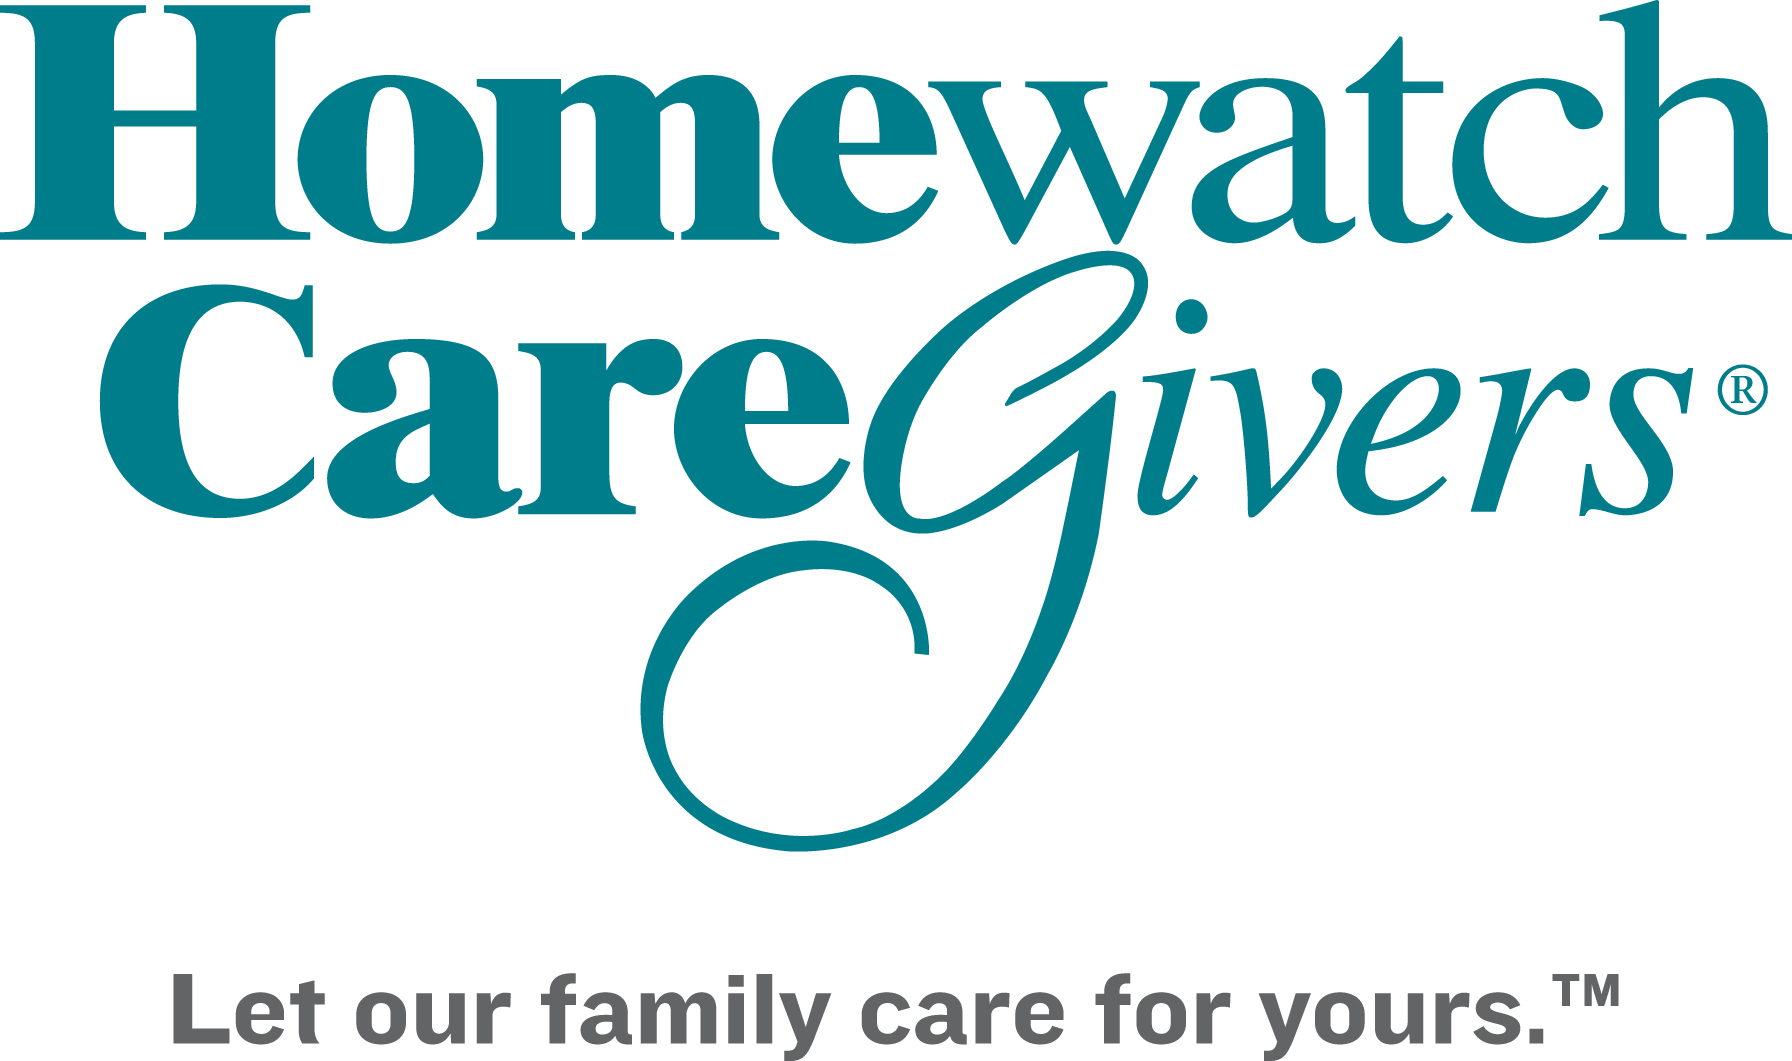 - HOMEWATCH CAREGIVERS10% off services, including childcare!